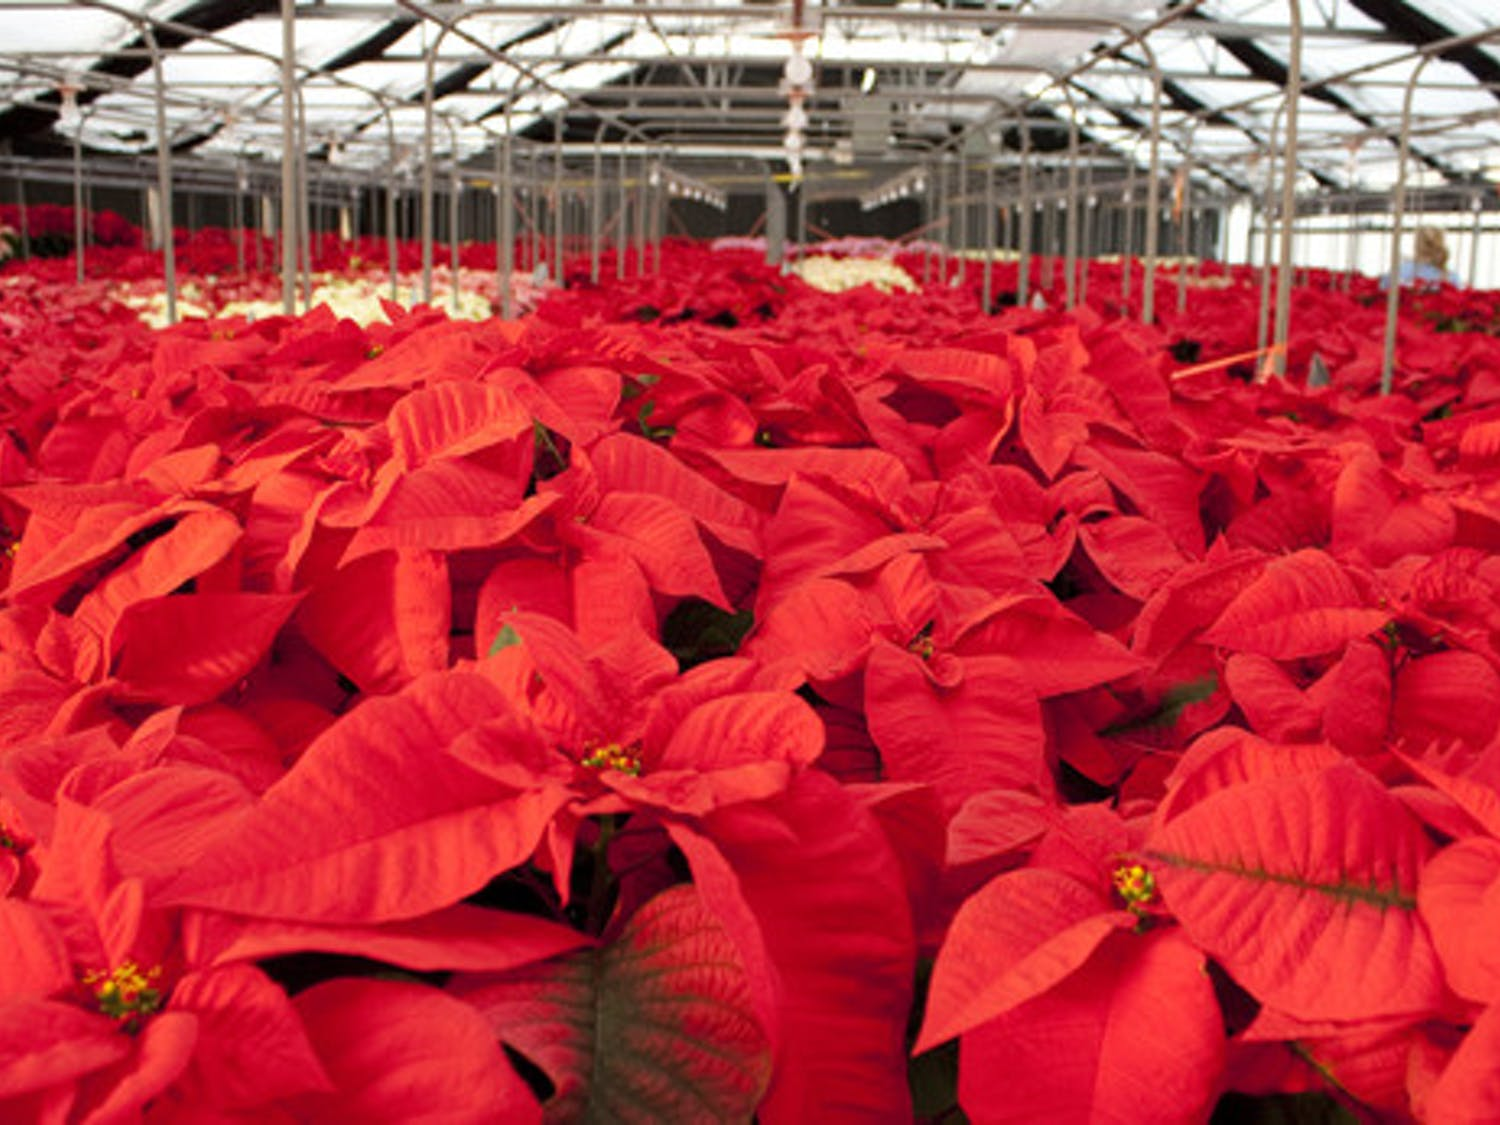 The UF Environmental Horticulture Club is selling poinsettias at the greenhouses behind Fifield Hall on Thursday and Friday. It is the largest poinsettia sale in North America, according to the College of Agricultural and Life Sciences.